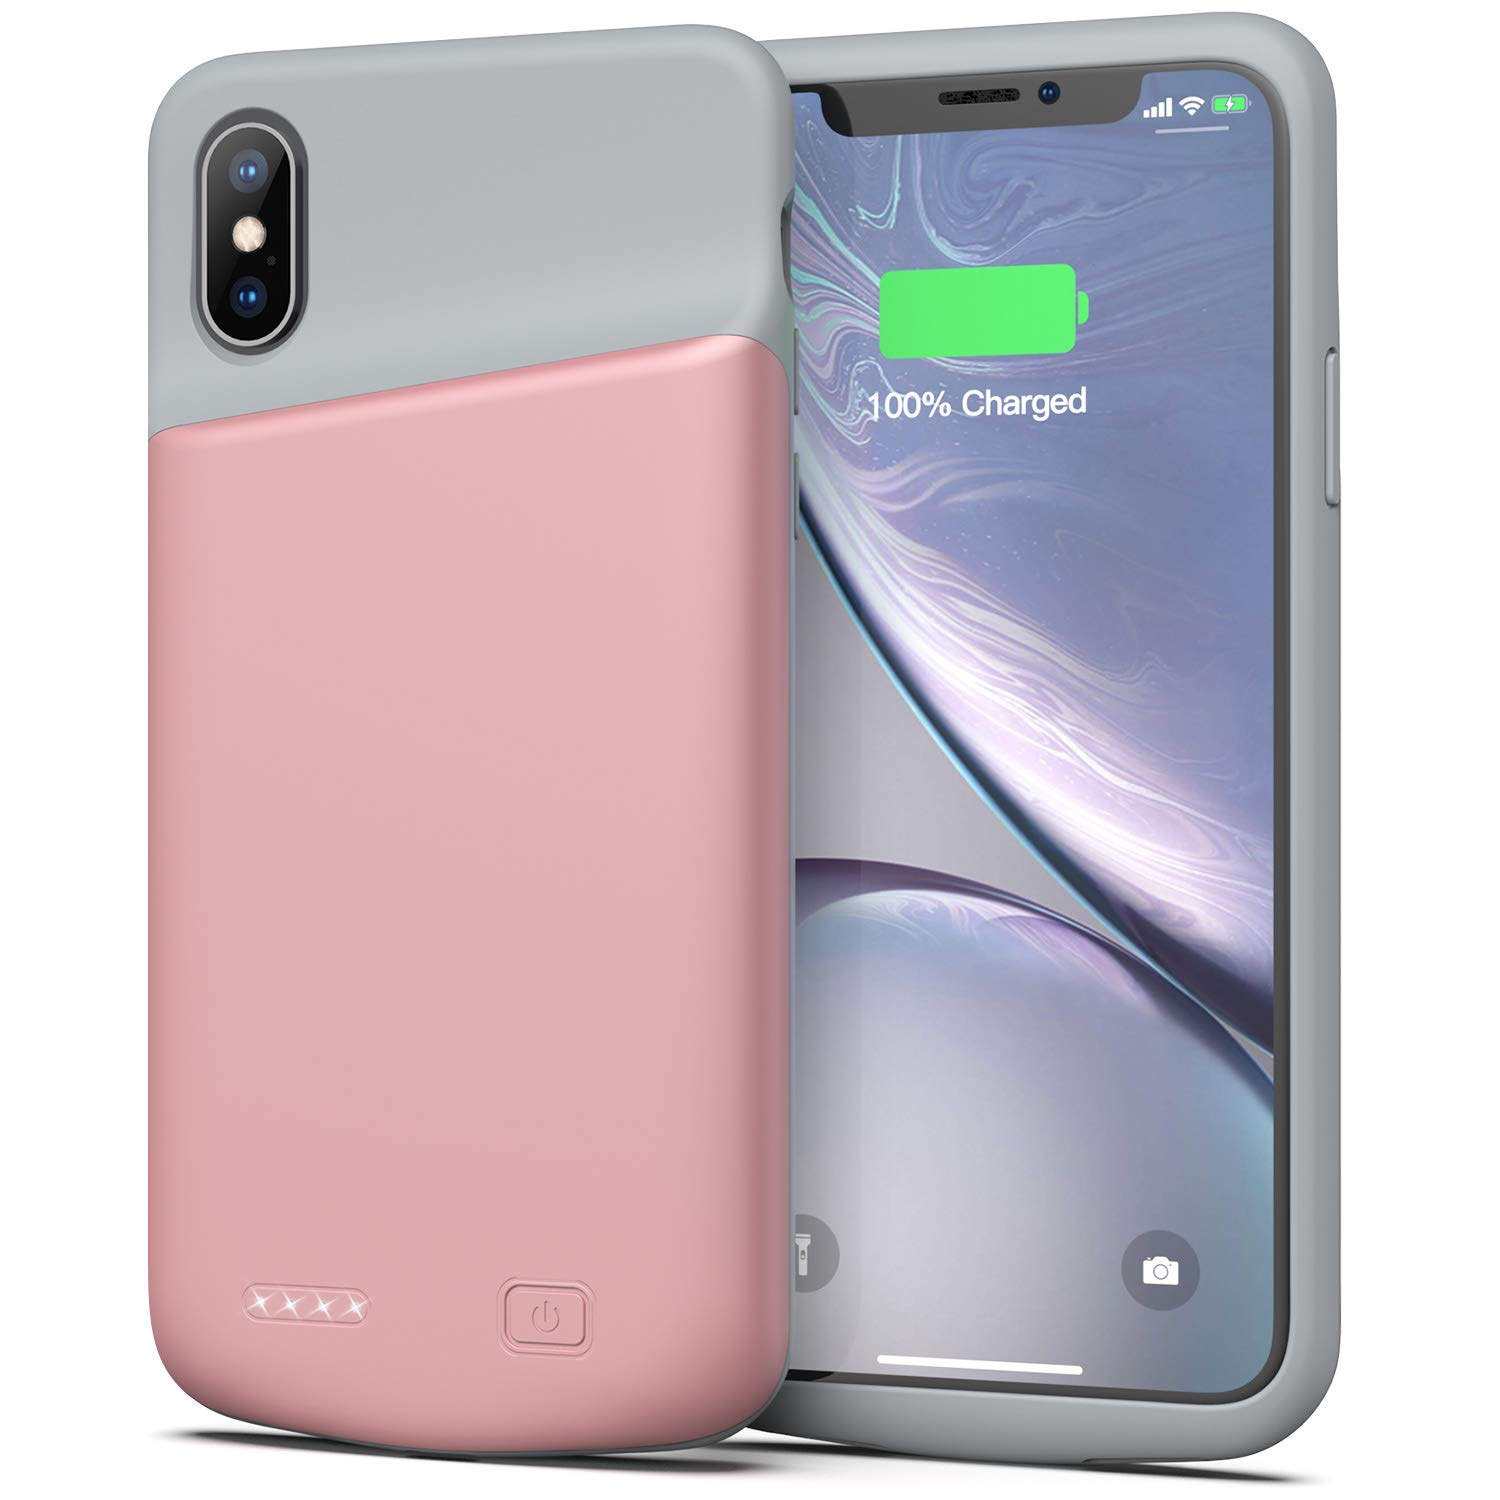 Swaller Battery Case for iPhone X/XS, 4000mAh Ultra Slim Protective Charging Case Rechargeable Extended Battery Pack for 5.8 inch iPhone X/XS (Pink)